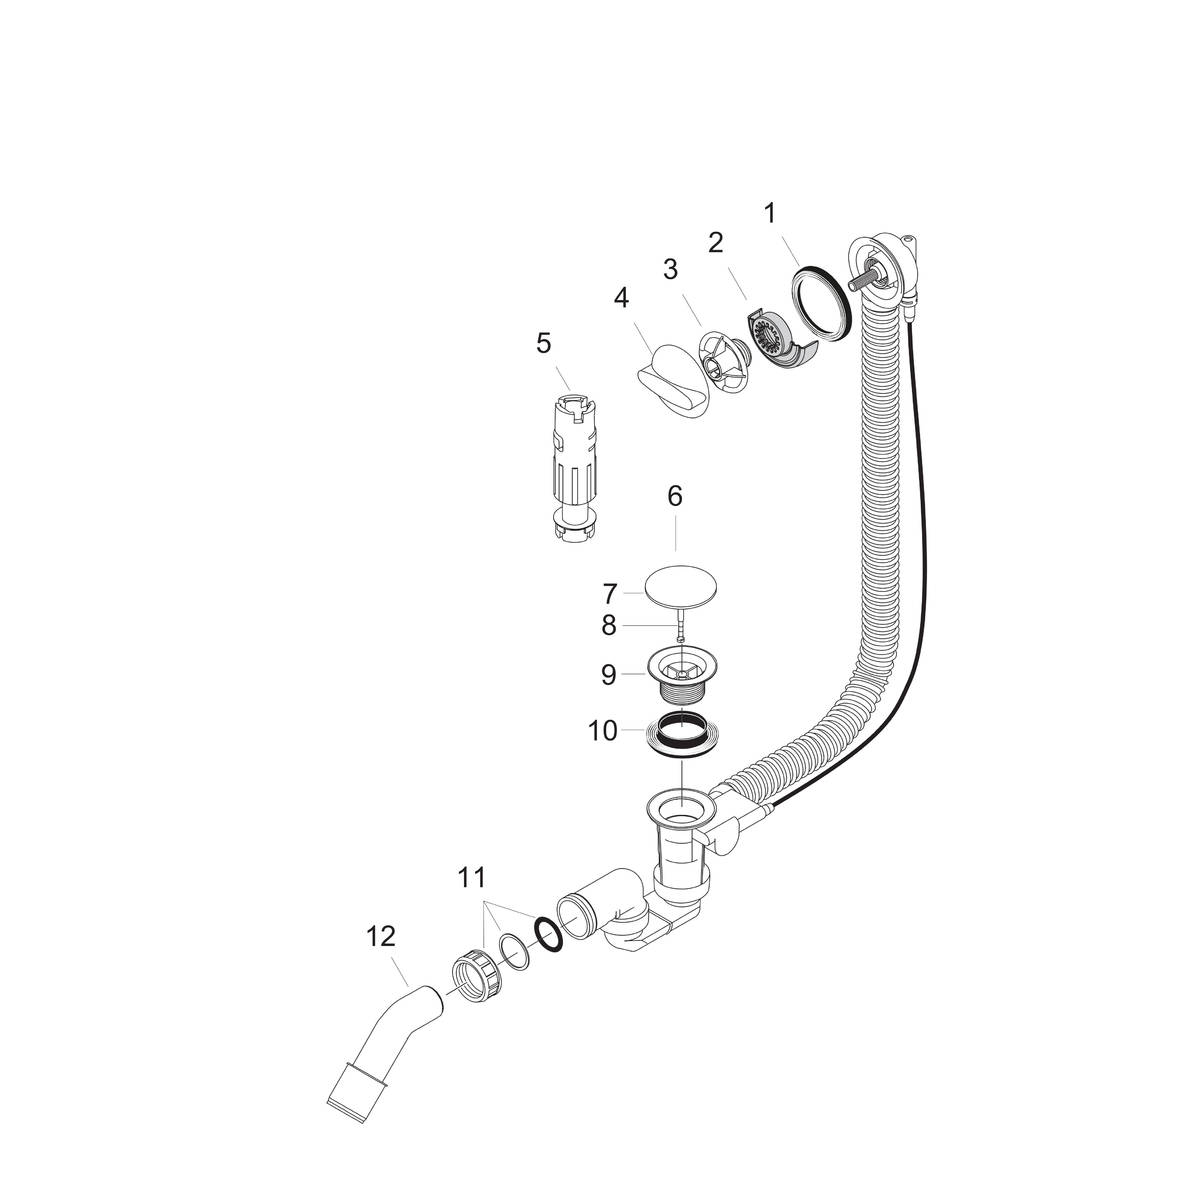 hansgrohe Basic set for bath filler with waste and